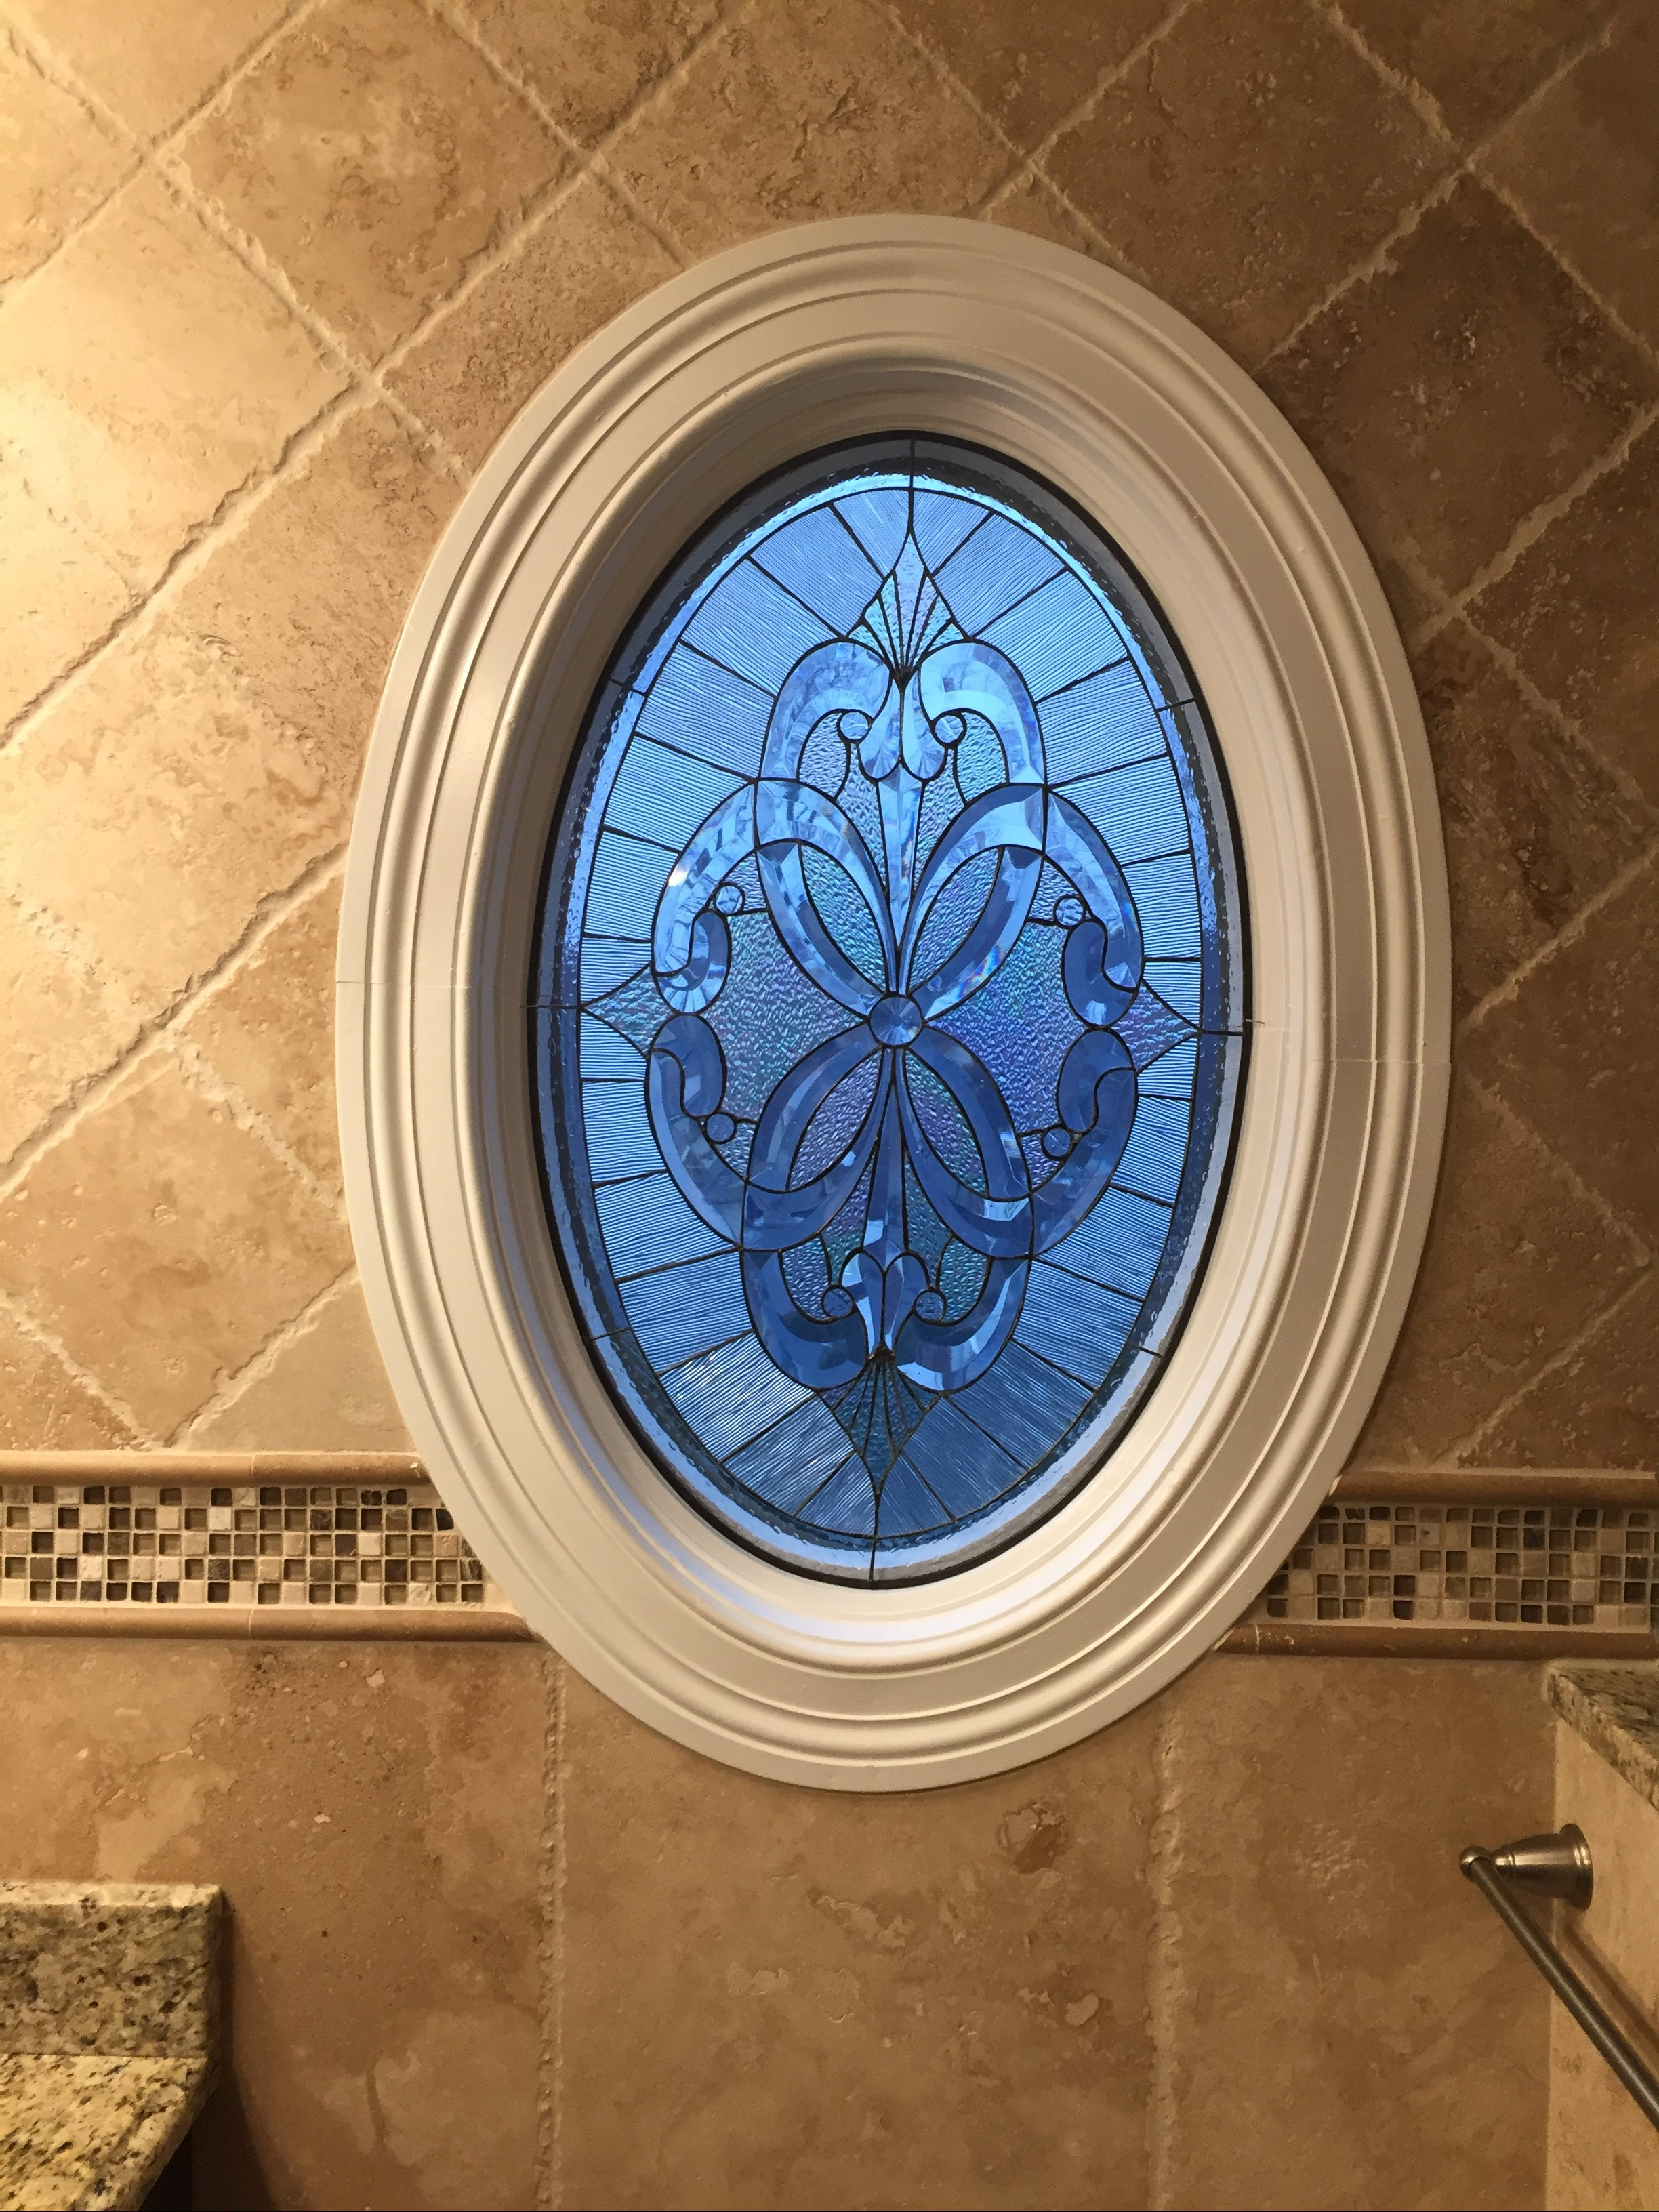 A Beautiful Oval Beveled Stained Window Insert Set Against The